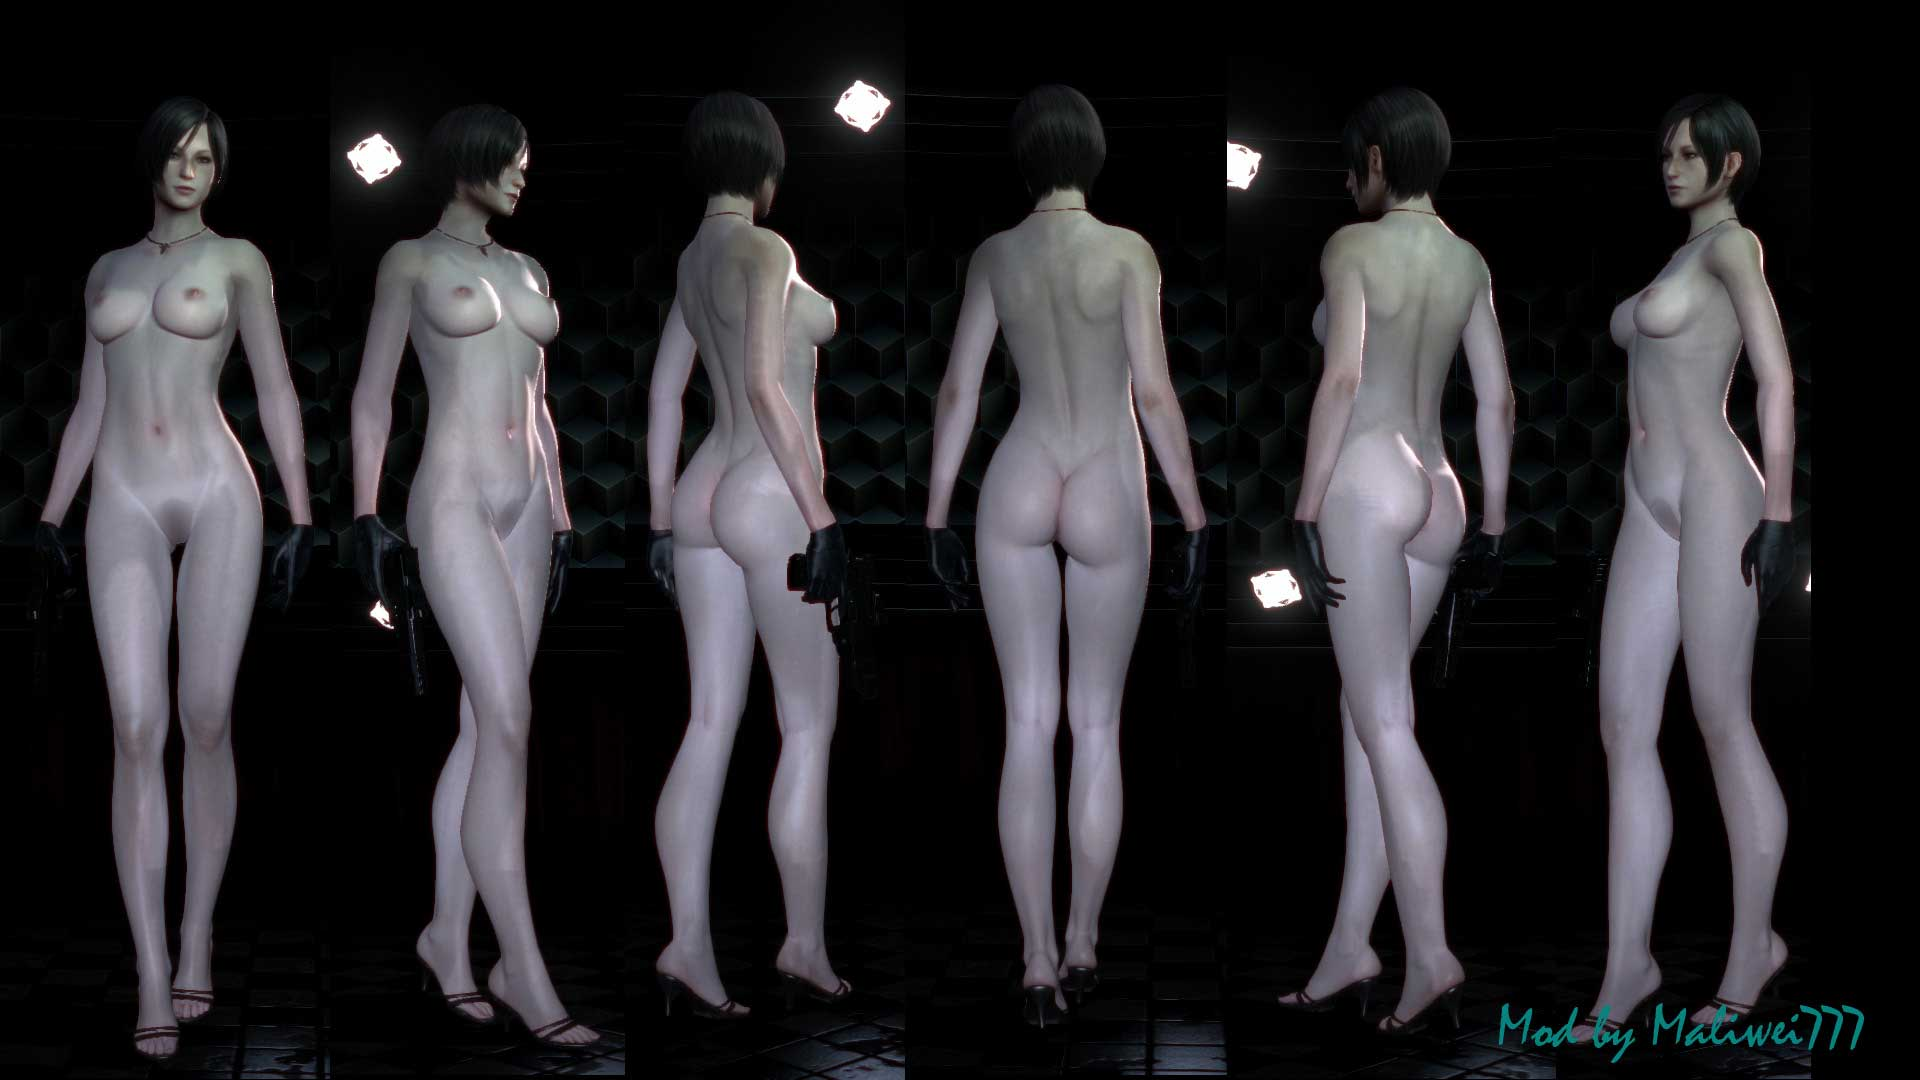 Resident evil all parts nude mod rar sexy pictures